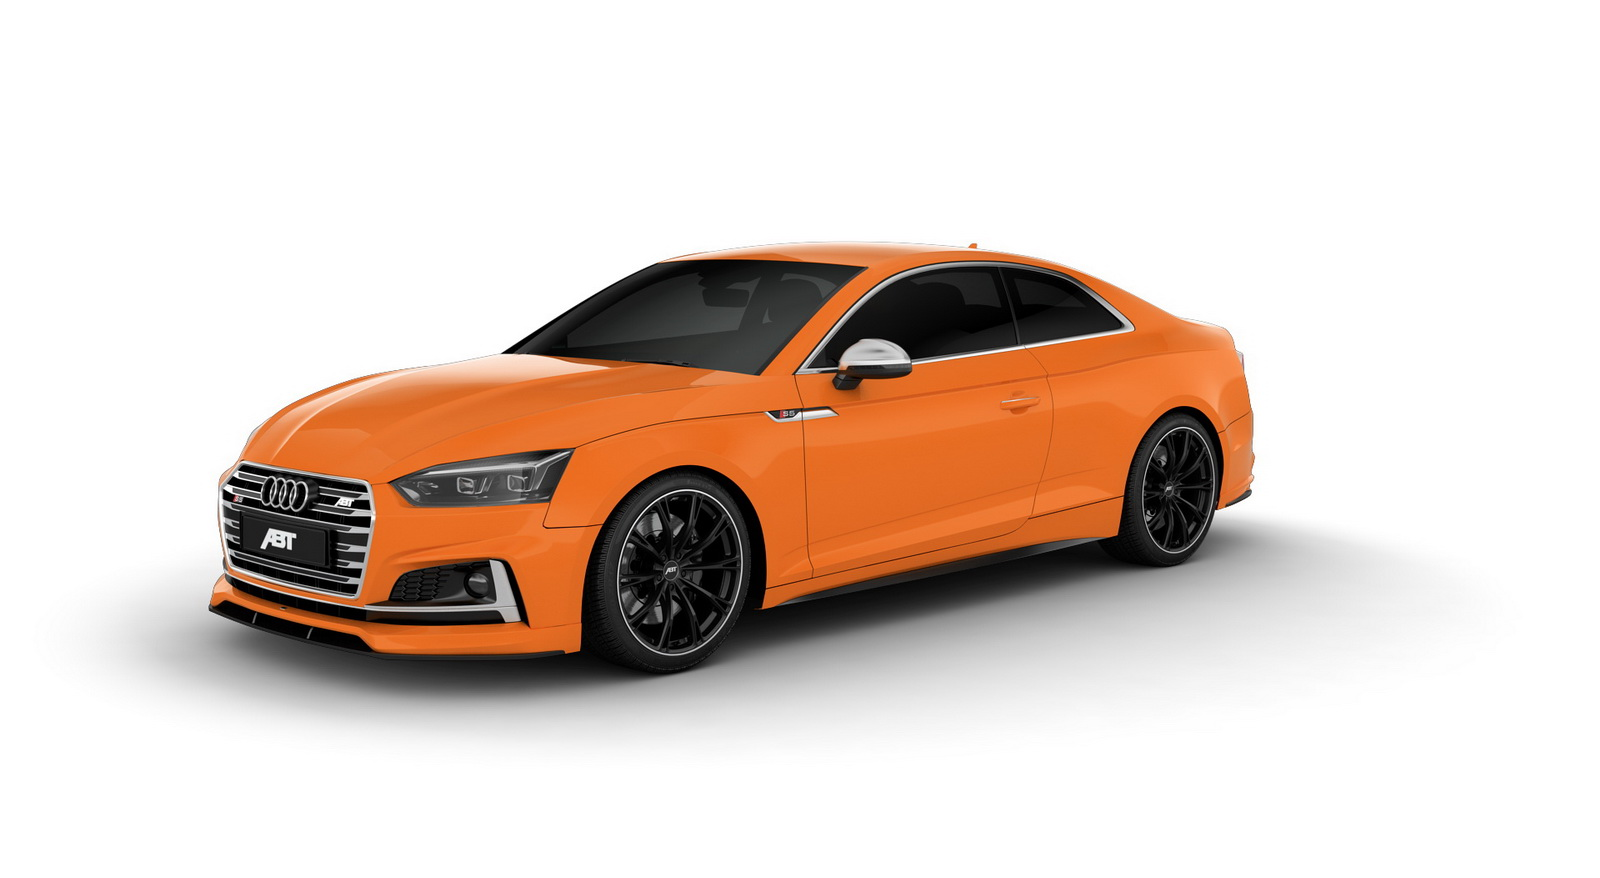 Abt Unveil New Body Kit For Audi A5 S5 Range